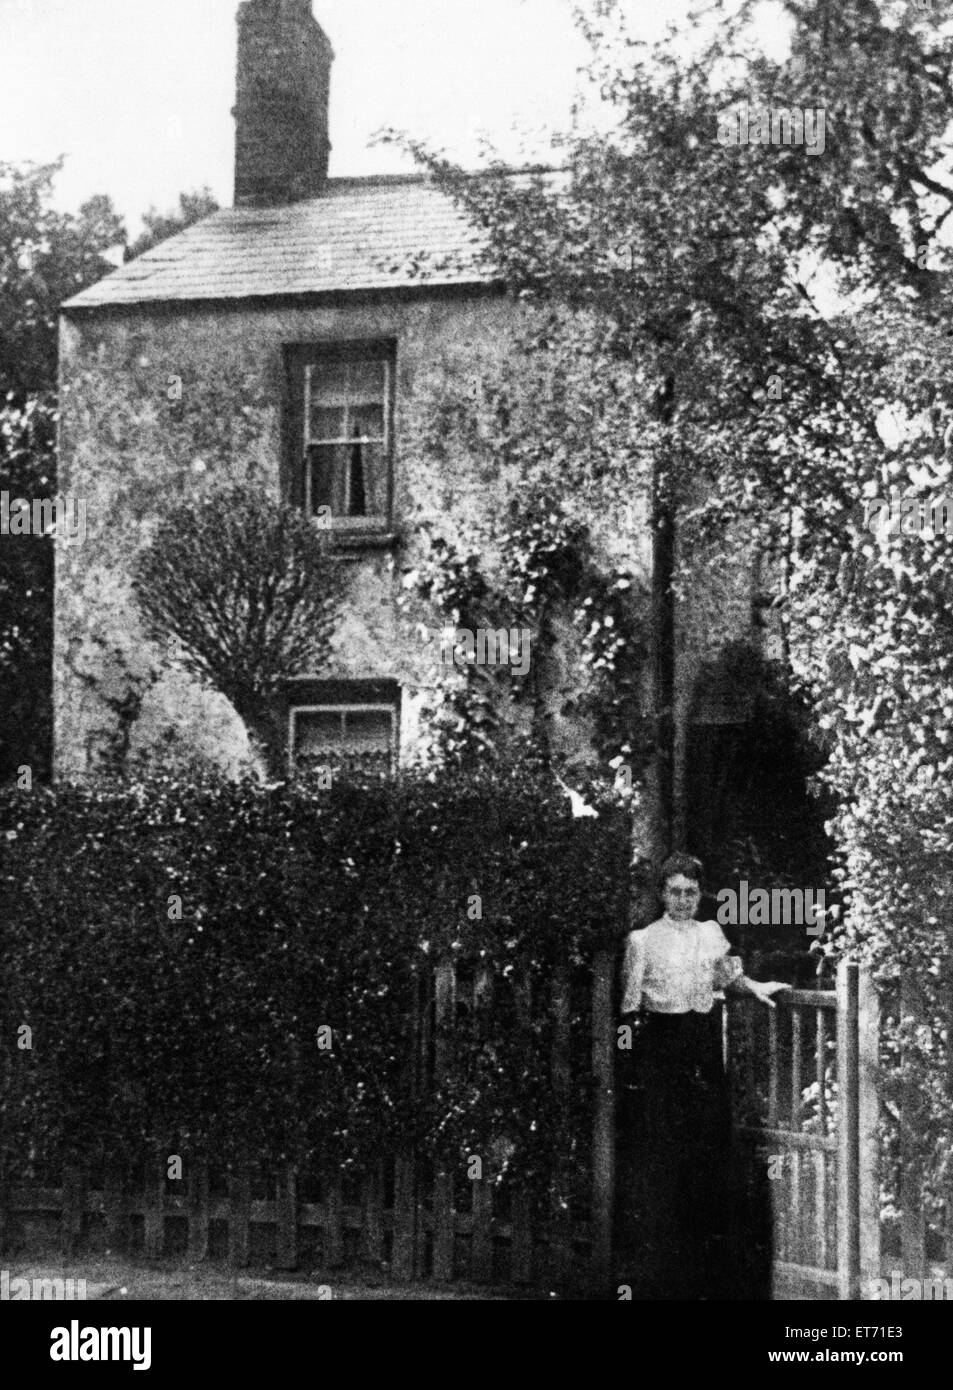 A centuries old cottage, possibly the oldest in Cardiff, will soon be welcoming a new resident-its present owner - Stock Image